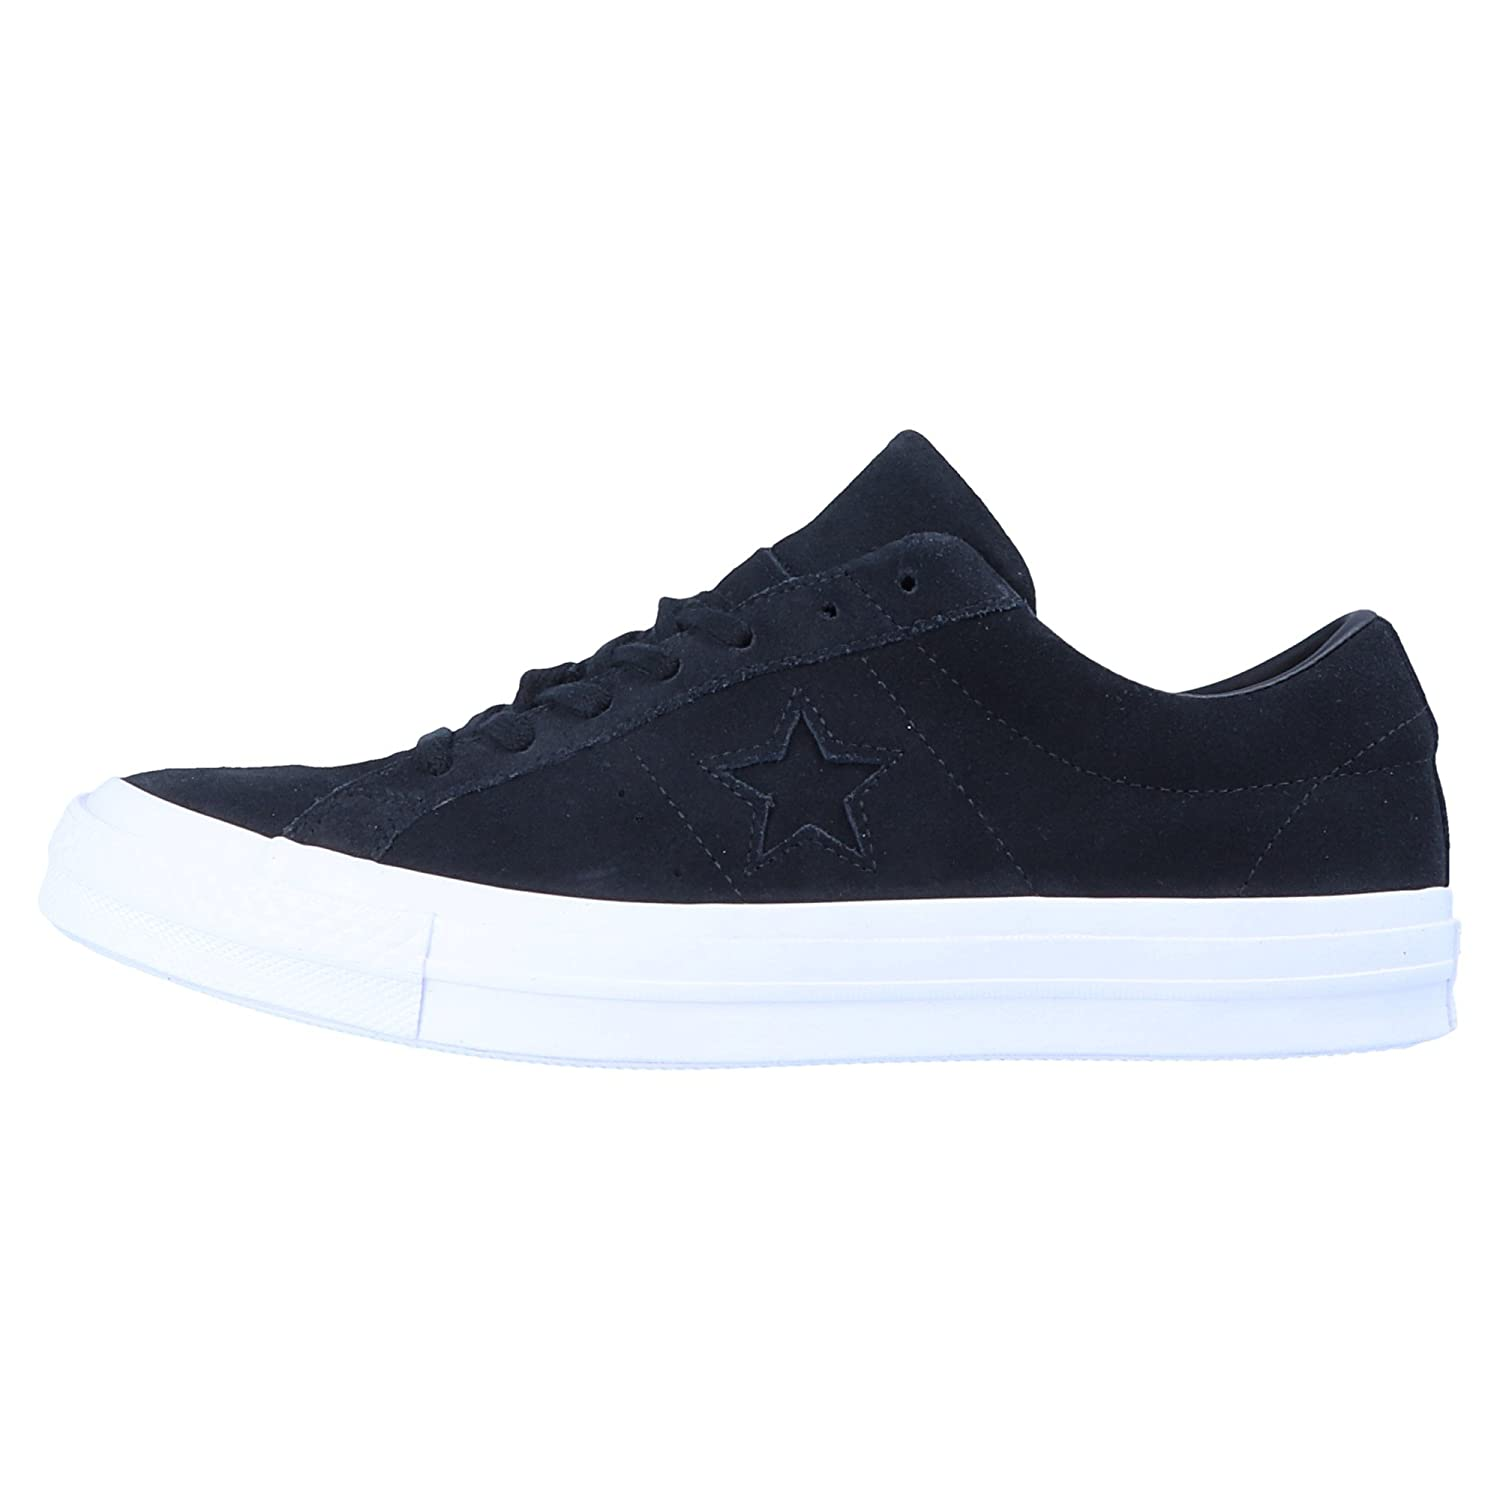 5cfdc6688521 Converse ONE Star Suede - OX Unisex Sneakers Black